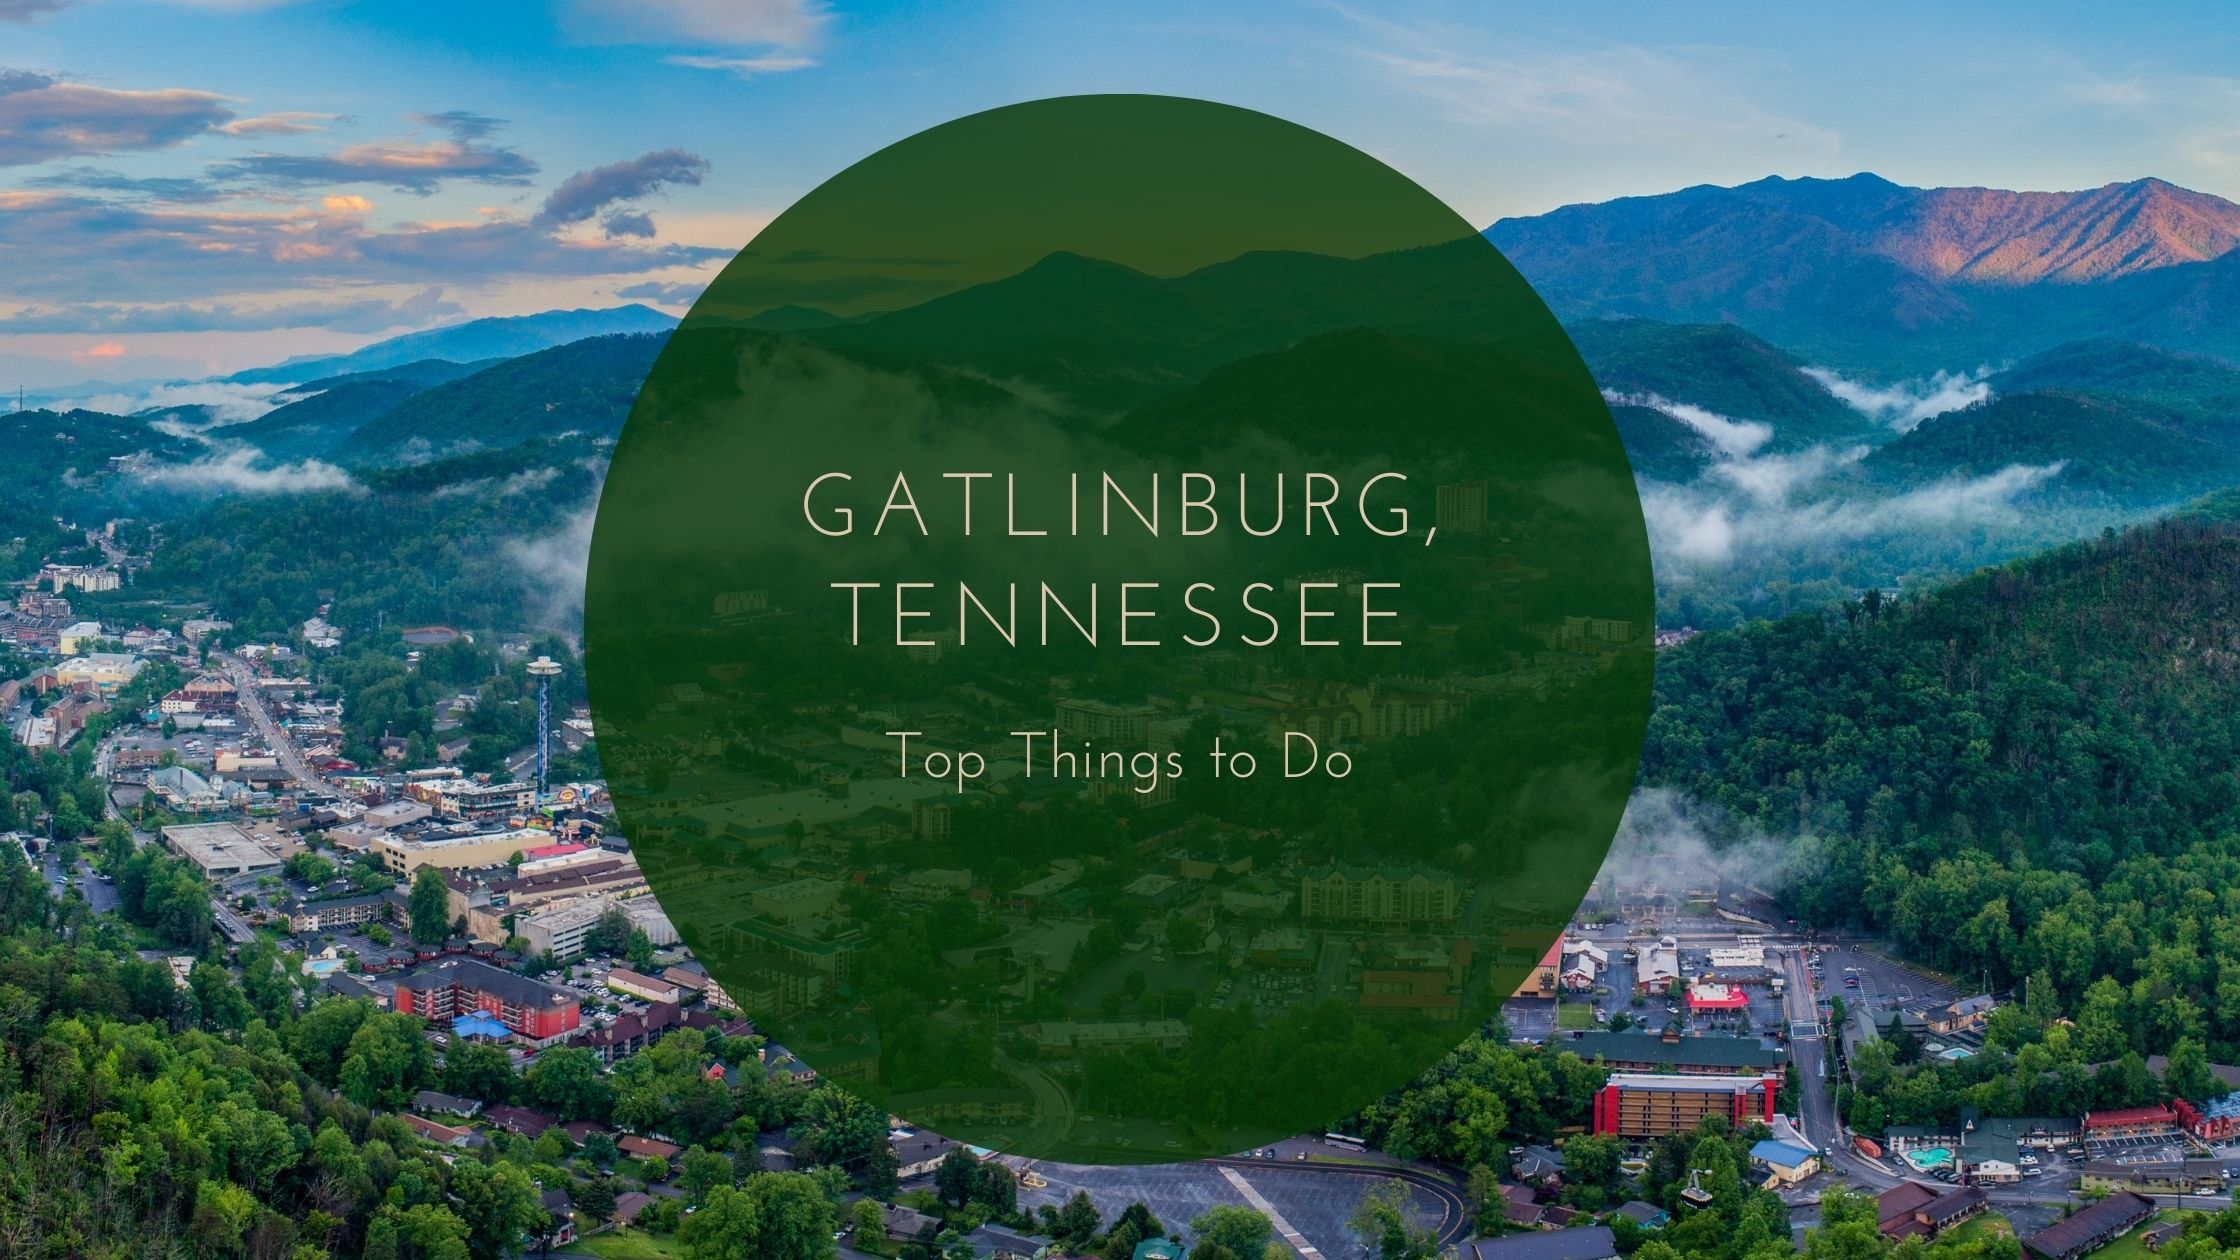 Top Things to do in Gatlinburg, Tennessee